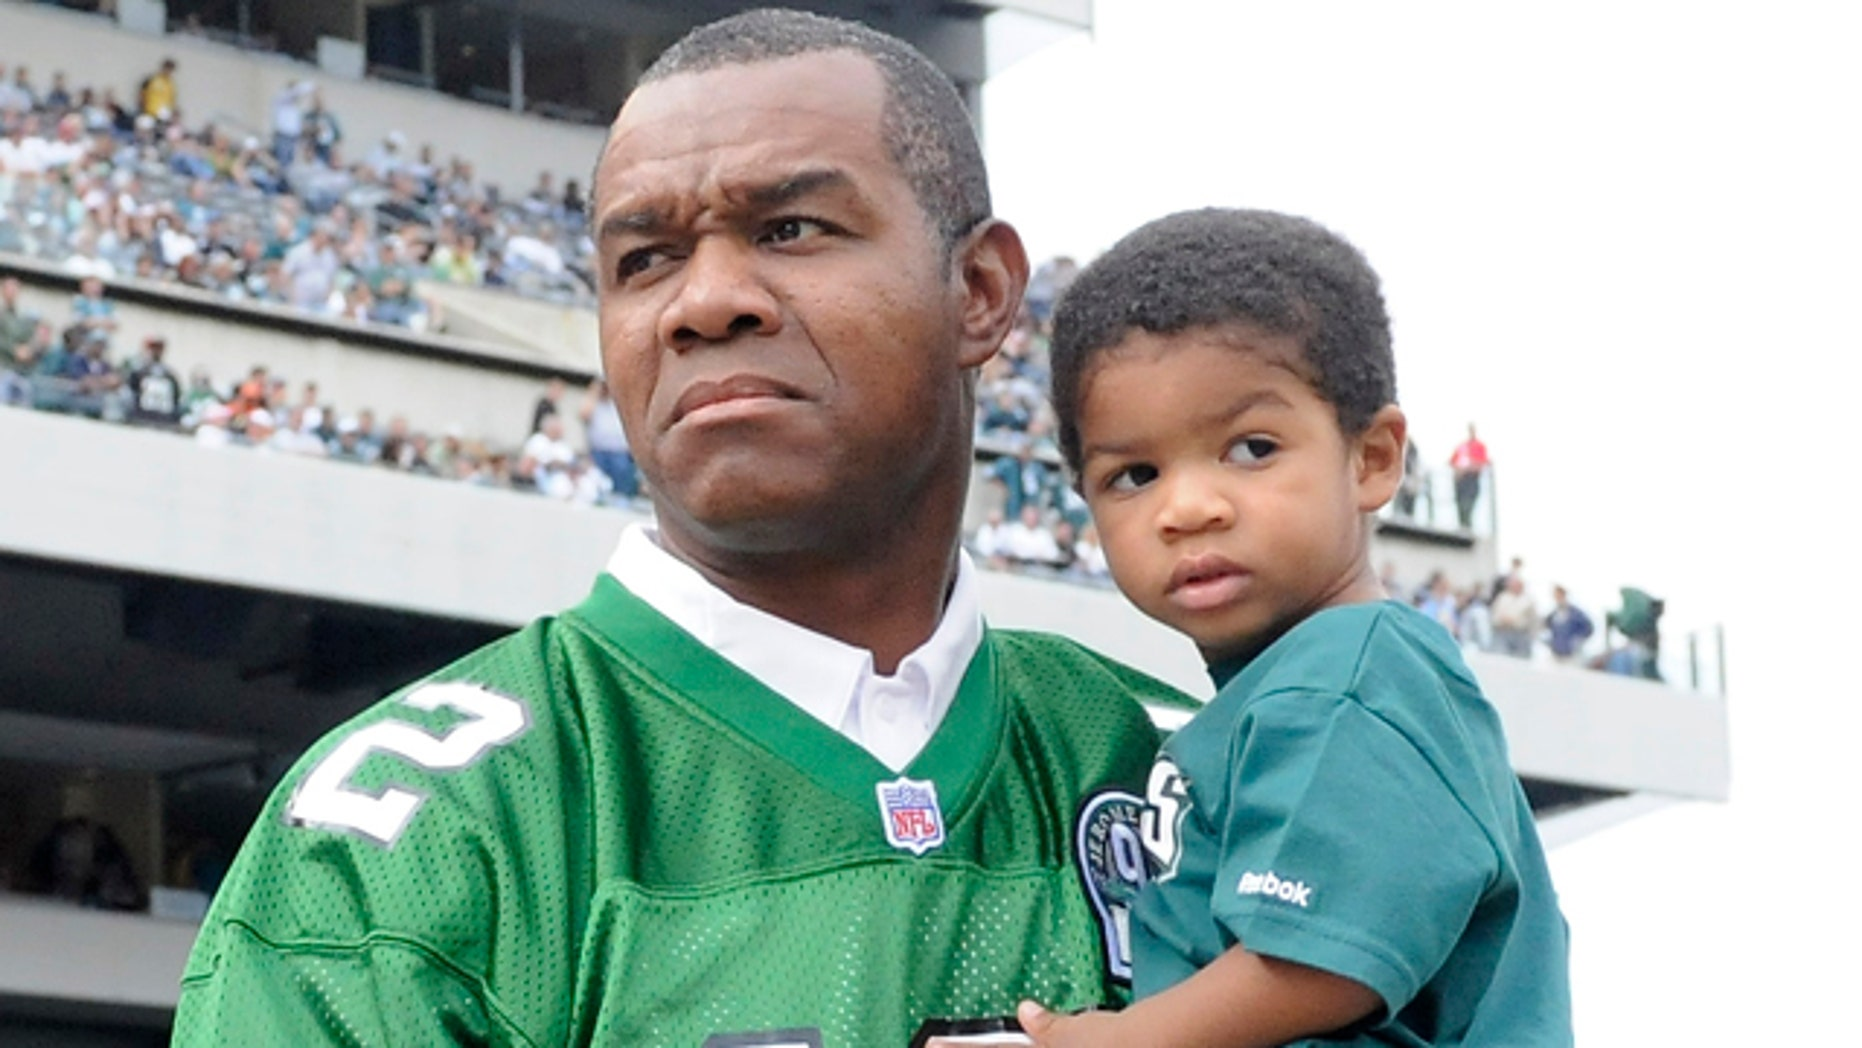 This photo made Sept. 27, 2009, shows former Philadelphia Eagles football player Randall Cunningham holding his son, Christian, during halftime of an NFL football game, in Philadelphia.